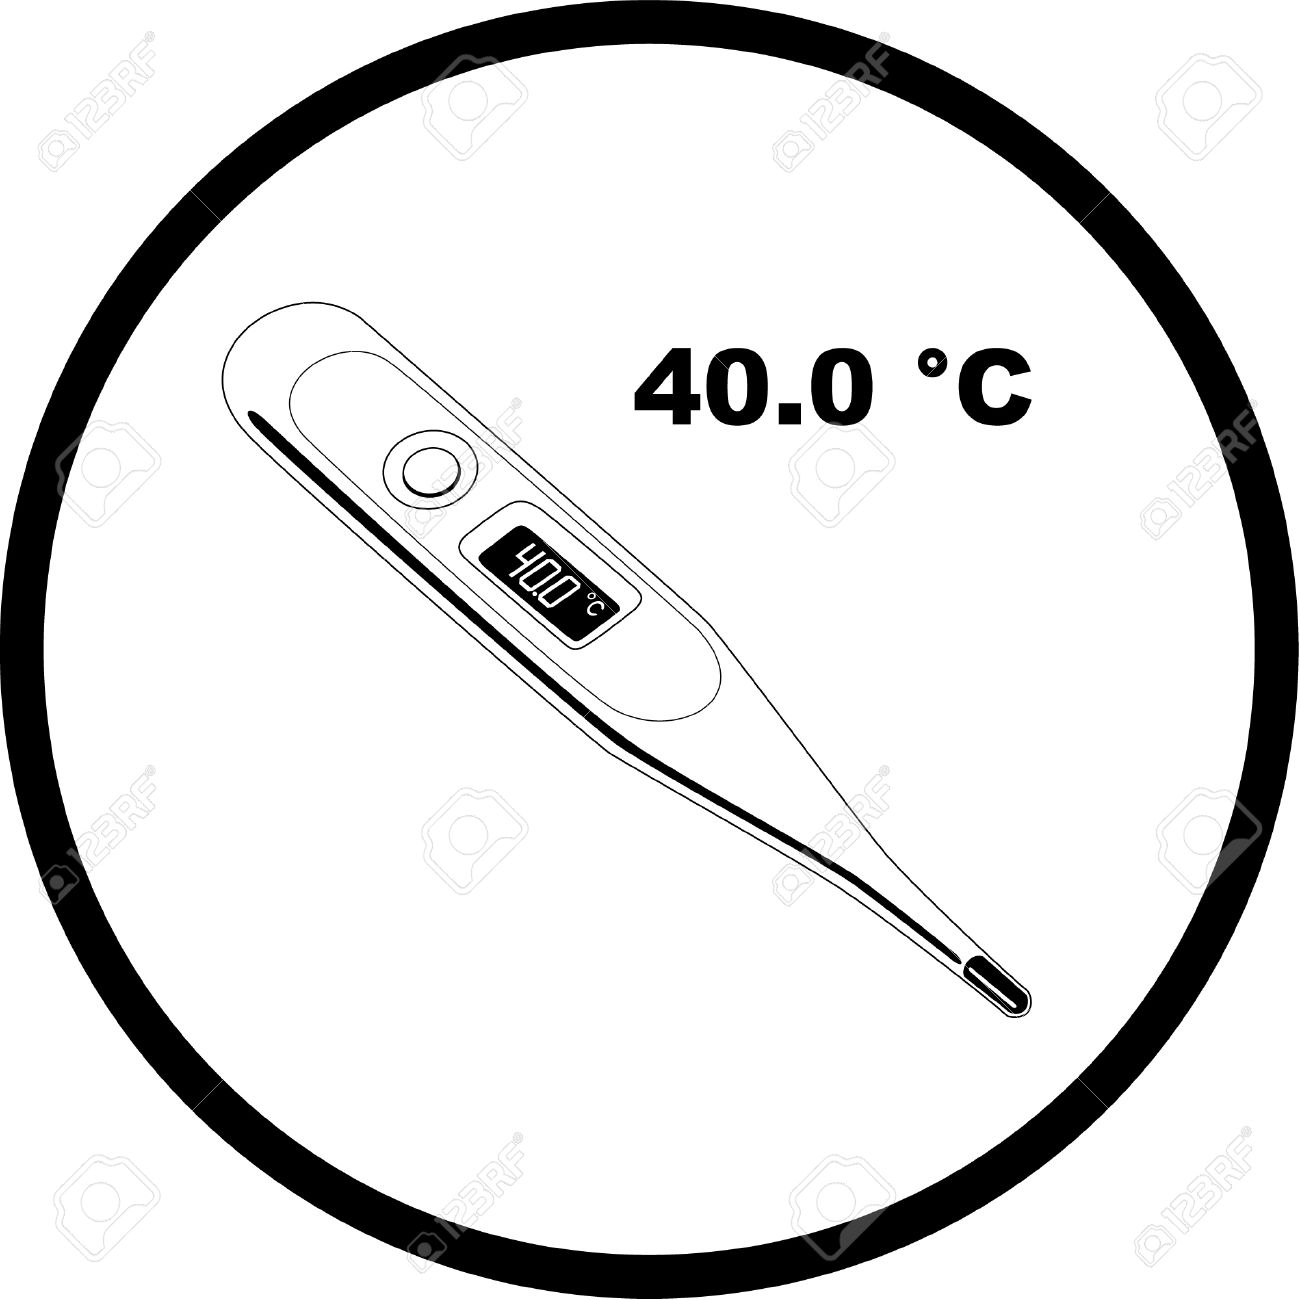 Vector Thermometer Icon. Shows 40 Degrees Celsius. Black And.